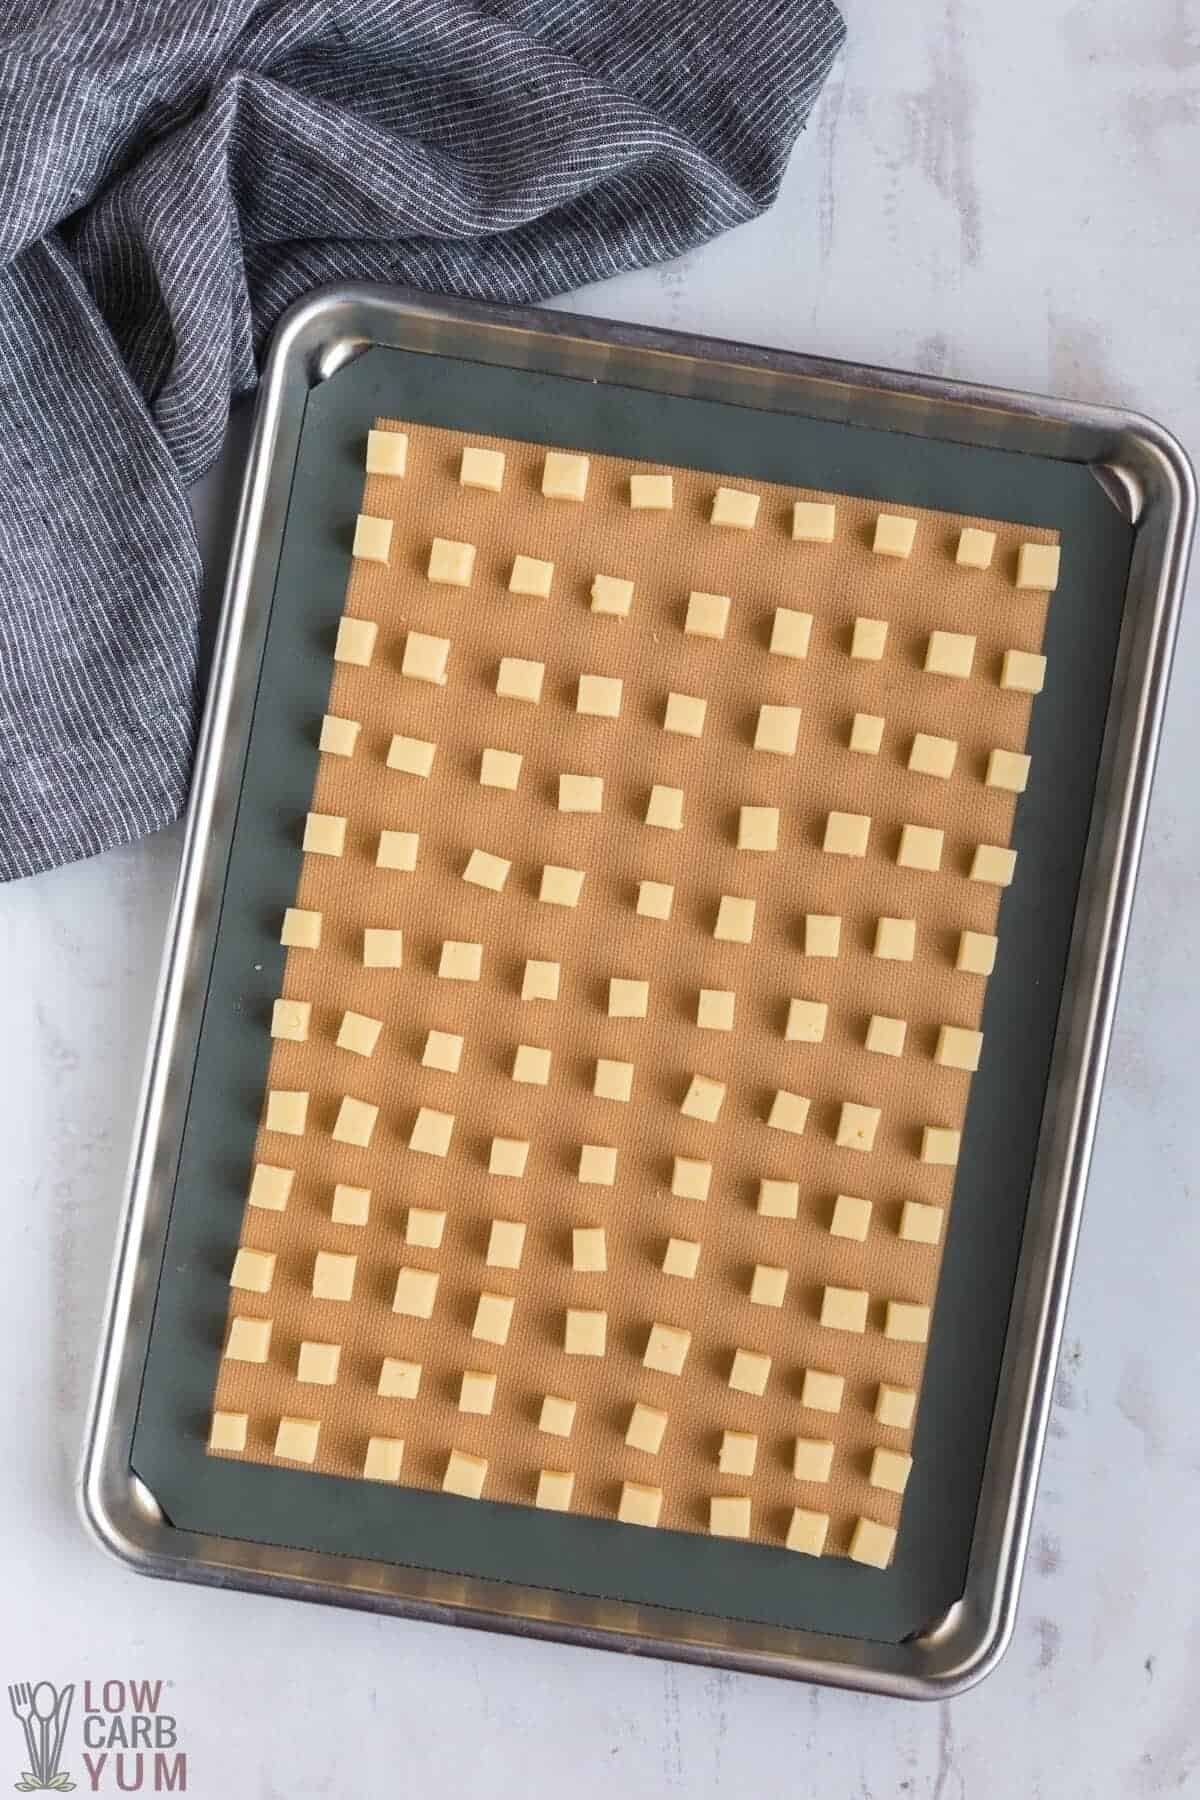 cubed cheese on lined baking sheet pan